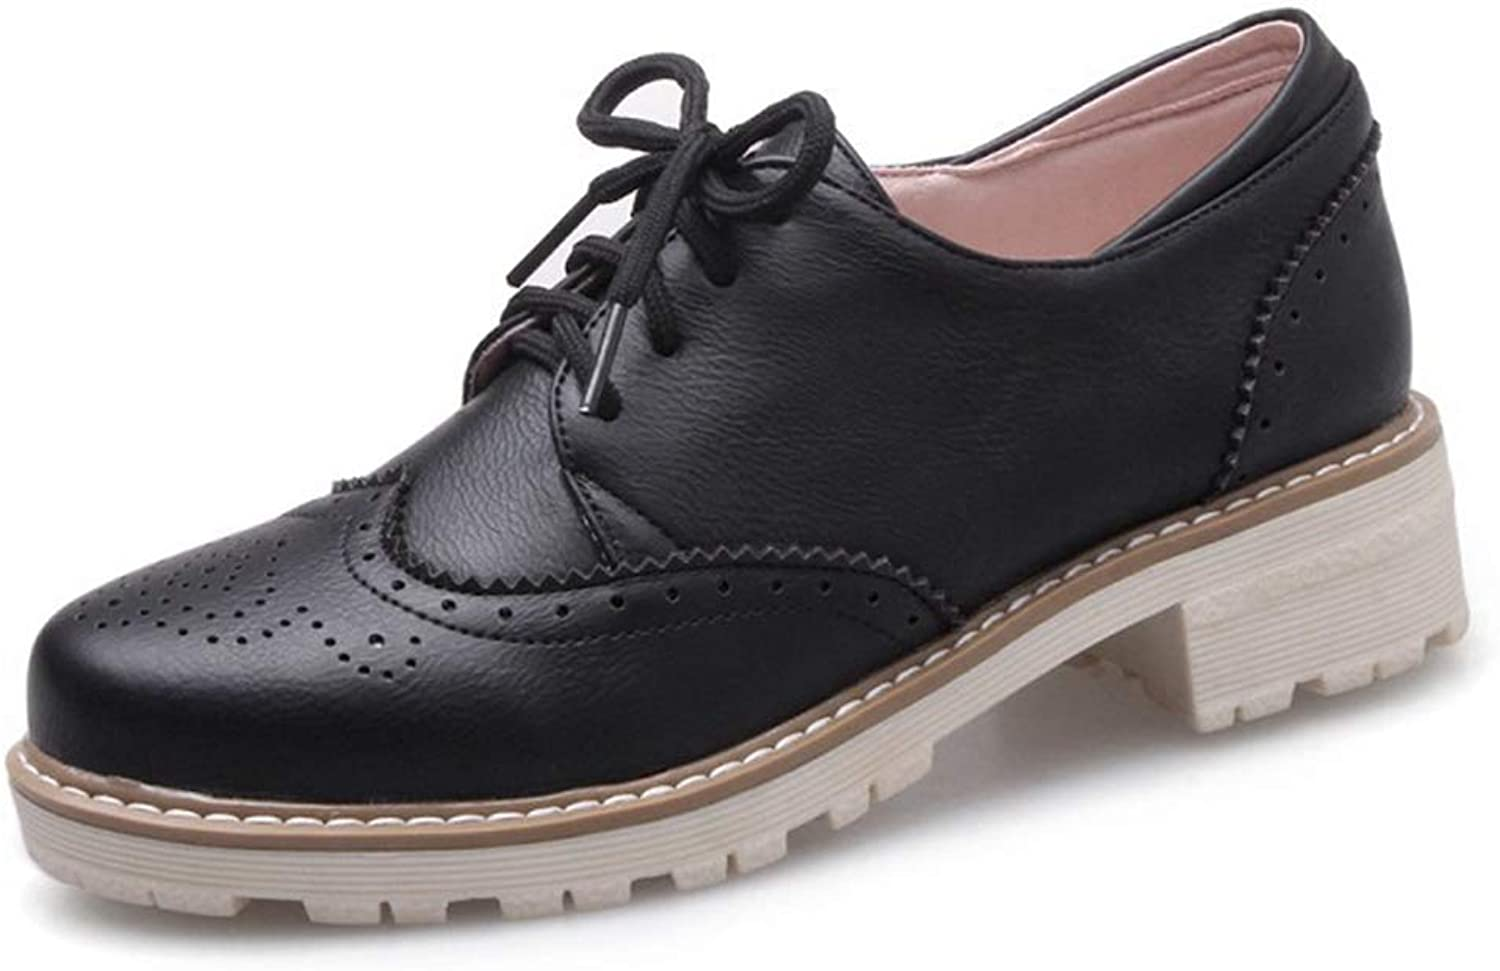 CYBLING Women's Perforated Lace-up Wingtip Flat Oxfords Brogues Vintage Leather Oxford shoes